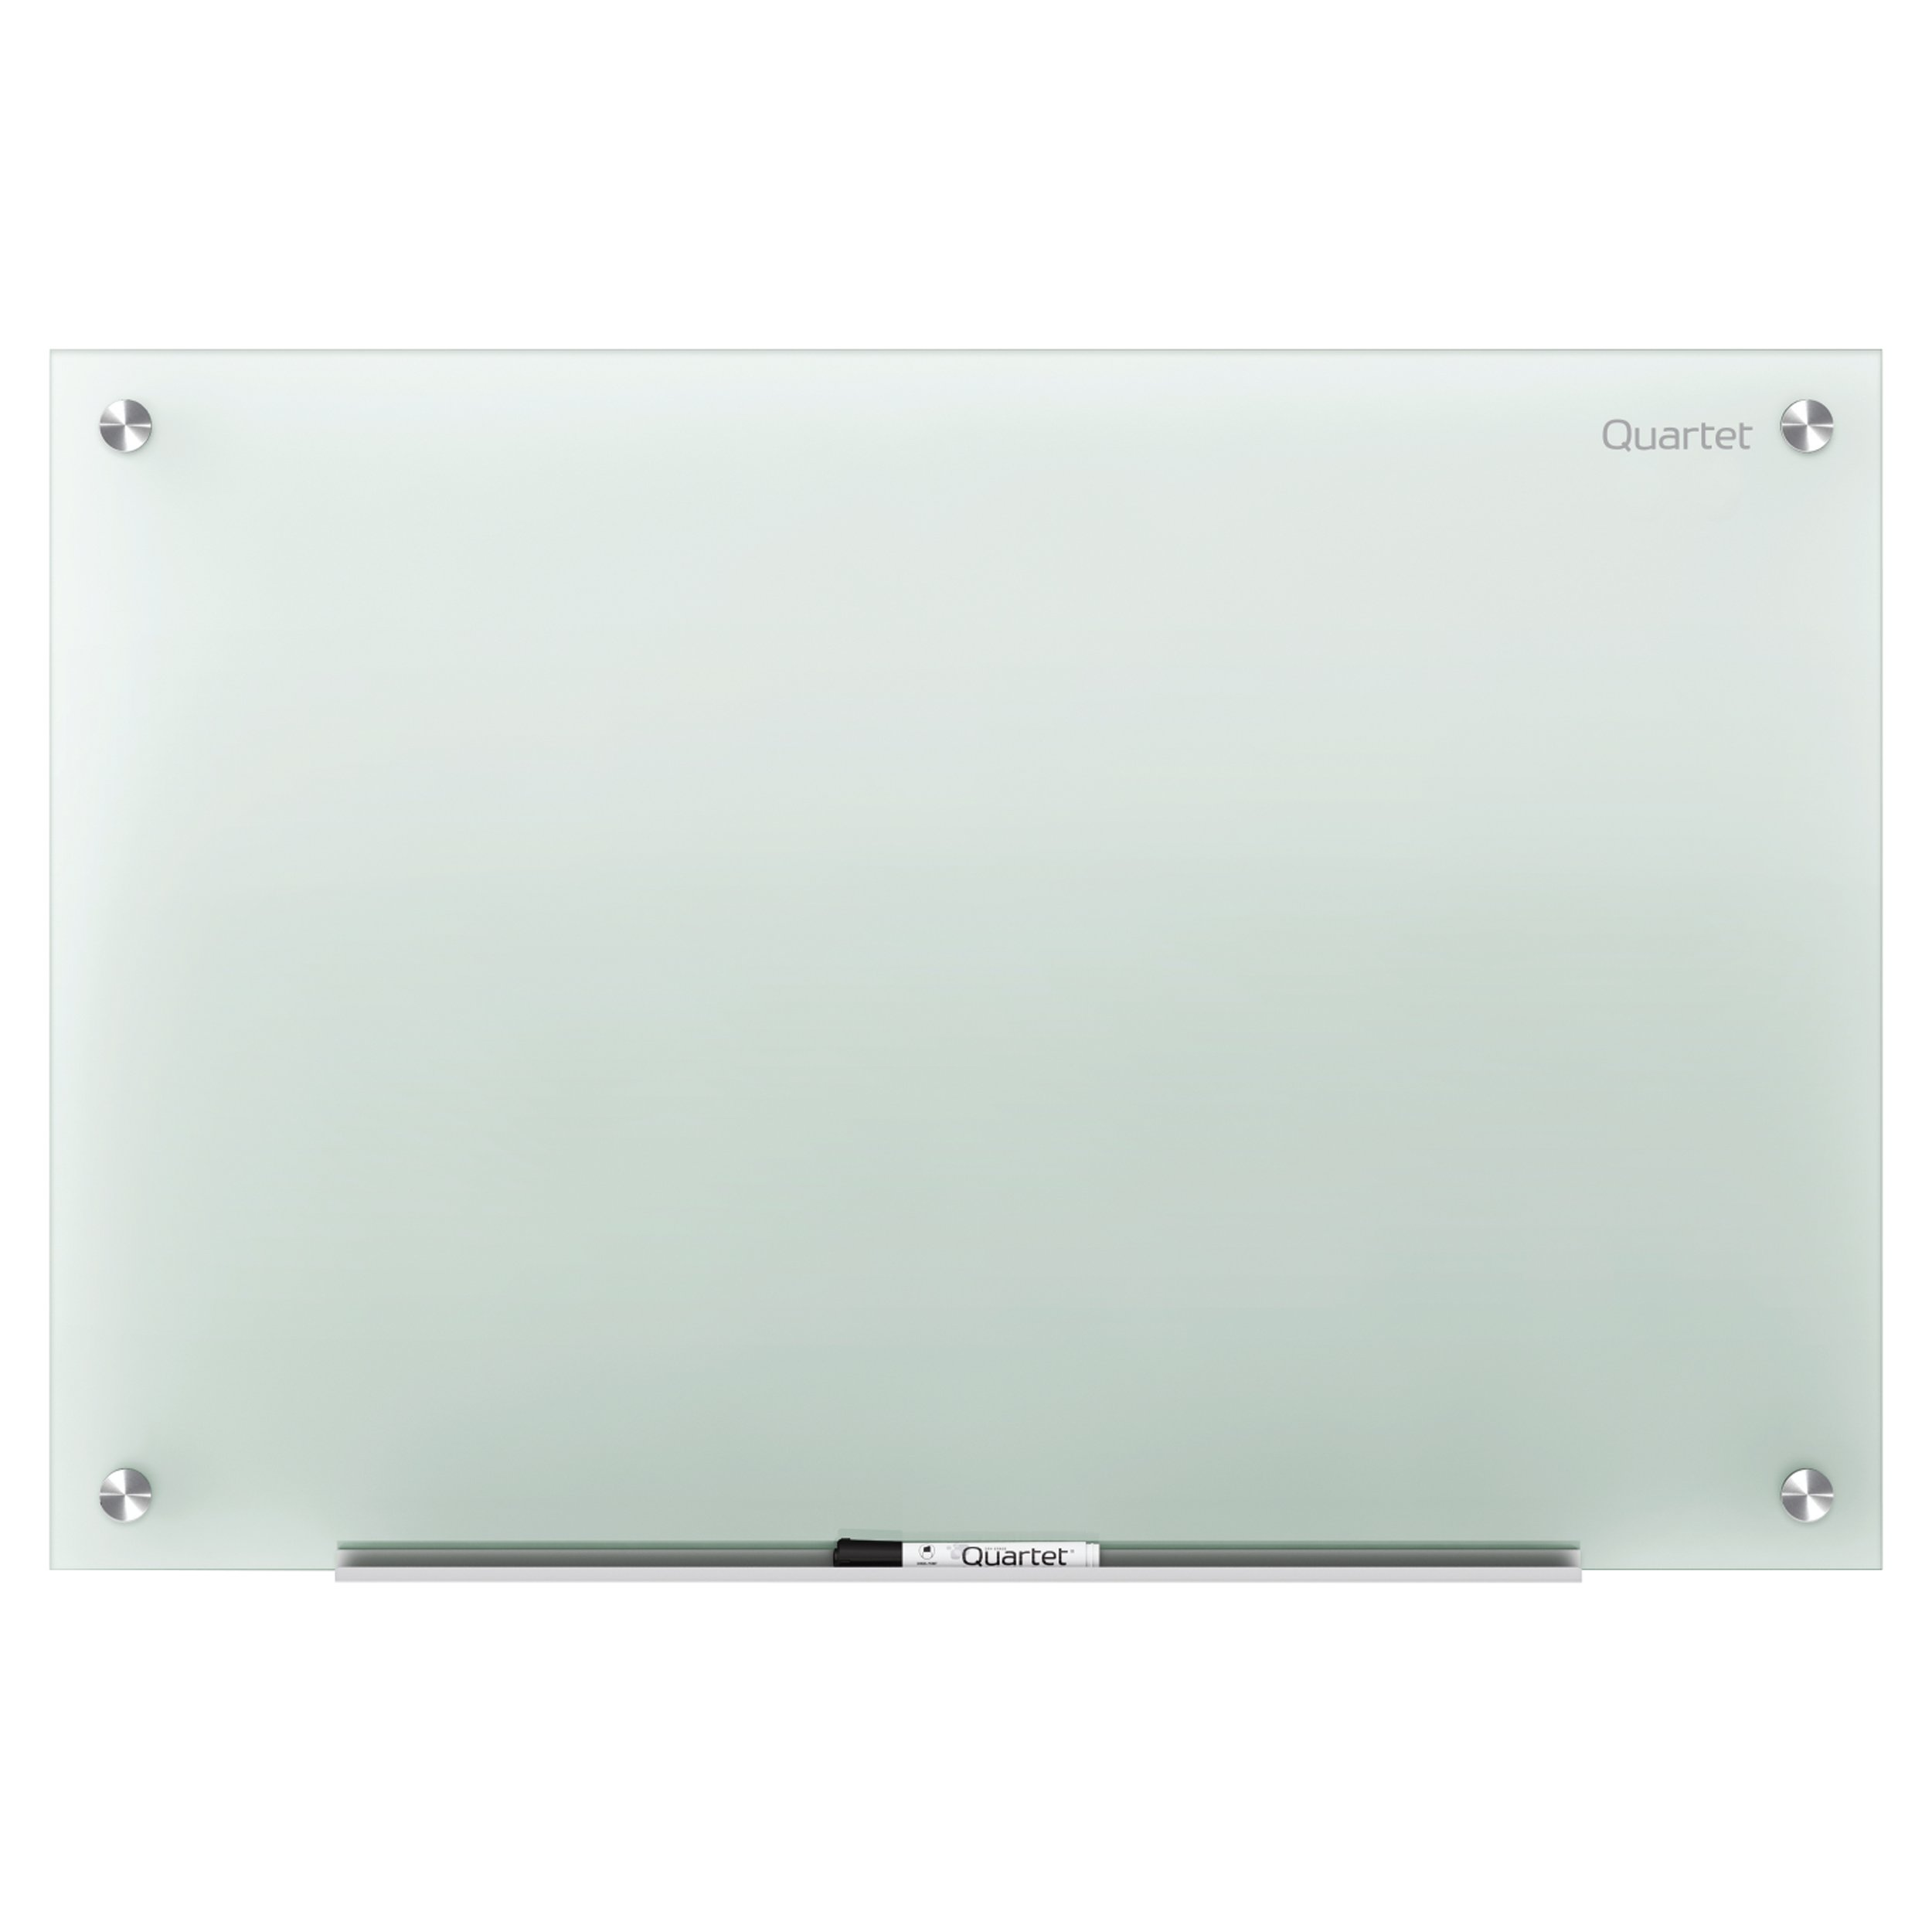 Quartet Glass Dry Erase Board, Whiteboard / White Board, 48'' x 36'', Frosted Surface, Non-Magnetic, Frameless, Infinity (G4836F)